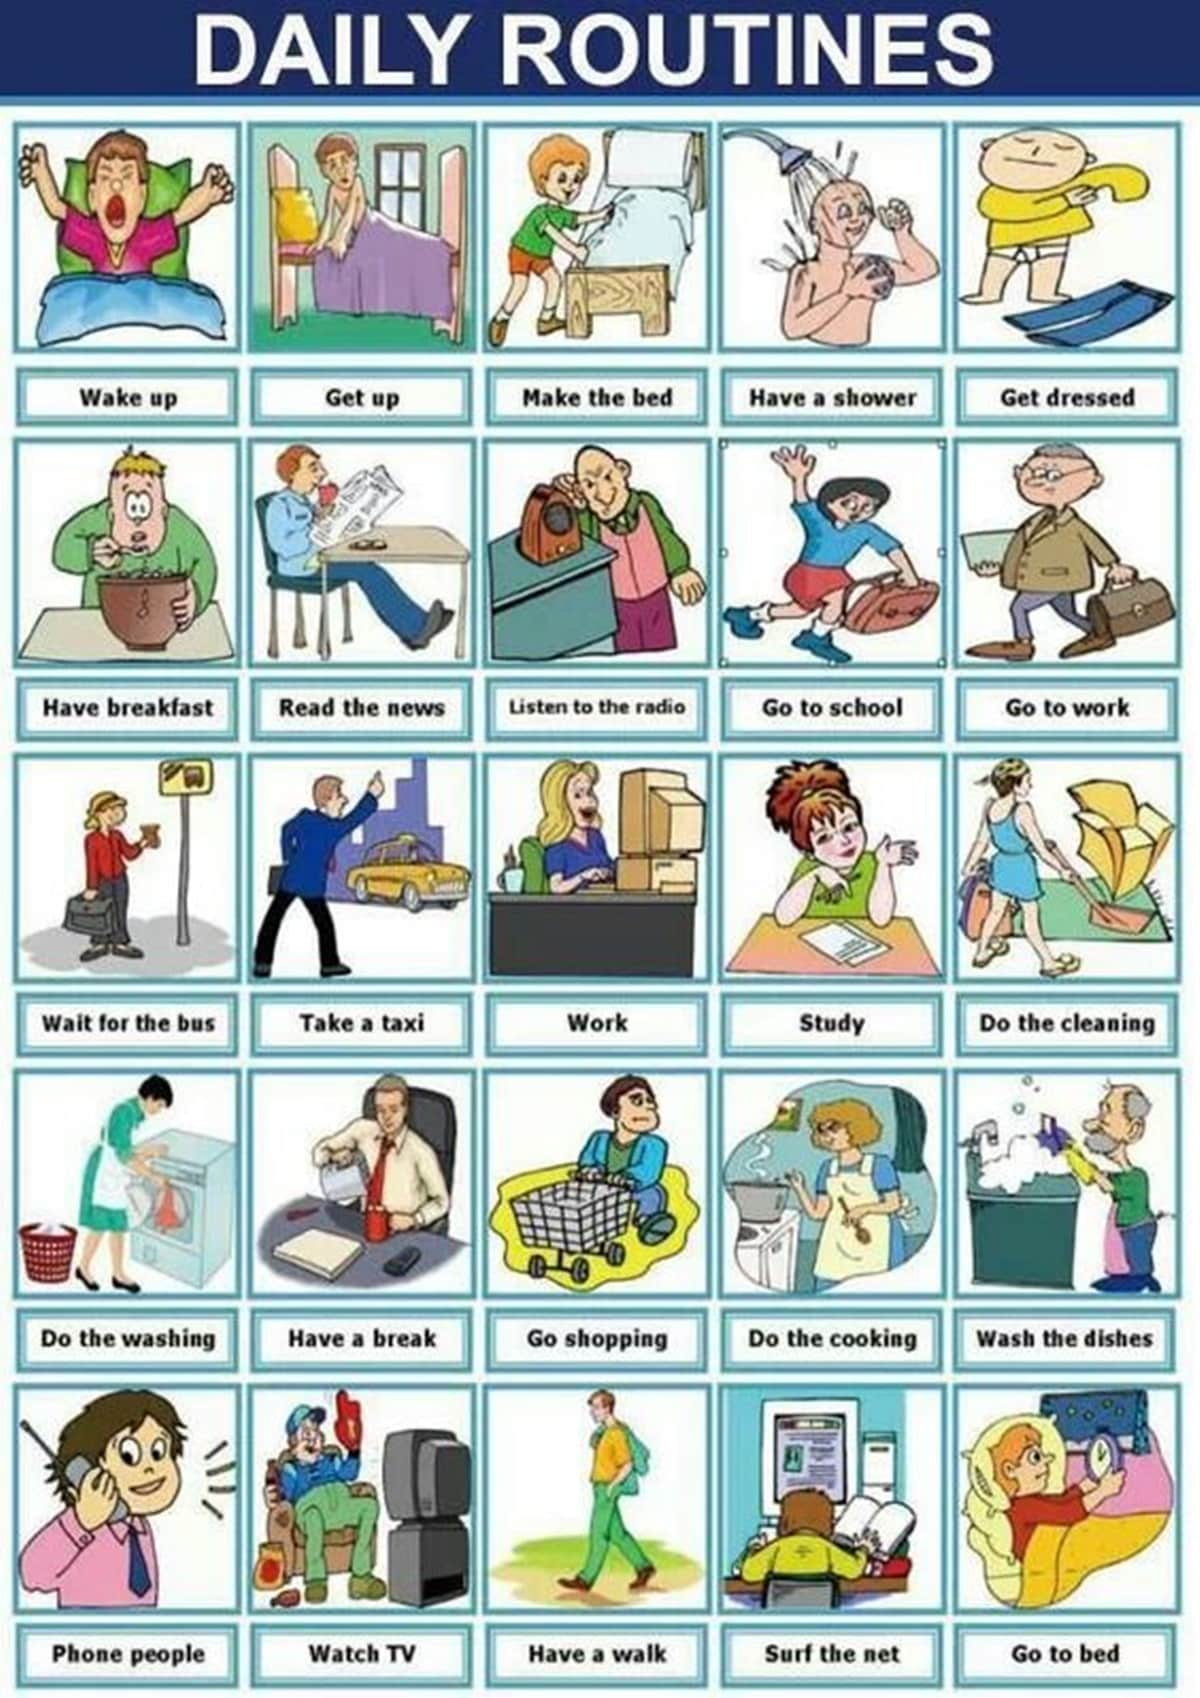 Daily Routines and Household Chores Vocabulary in English